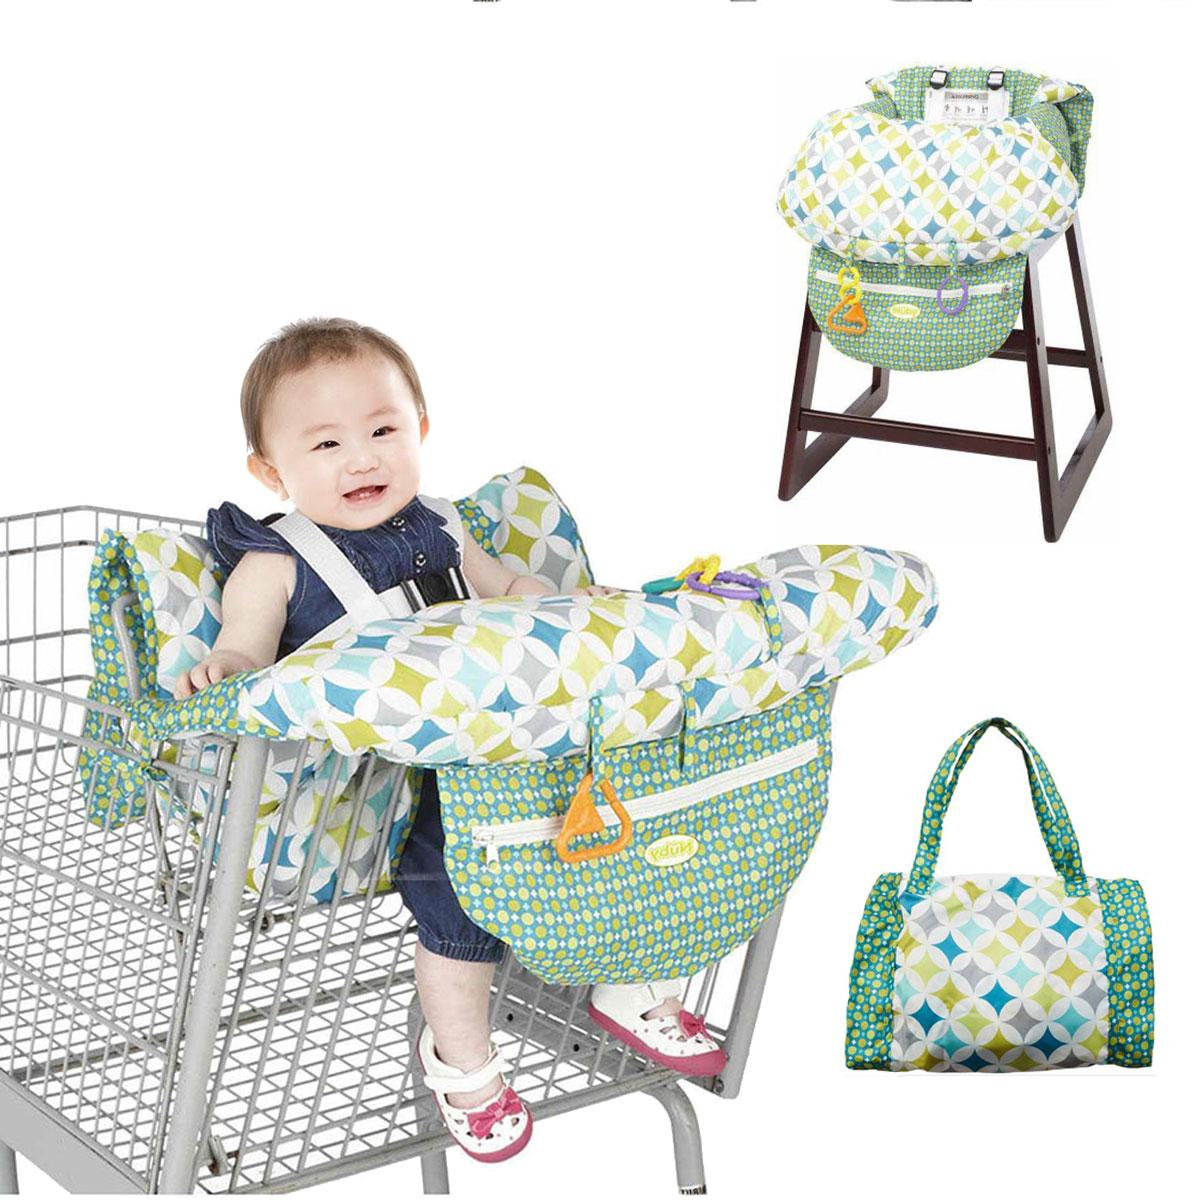 Foldable Baby Kids Shopping Cart Cushion Kids Trolley Pad Baby Shopping Push Cart Protection Cover Baby Chair Seat Mat New